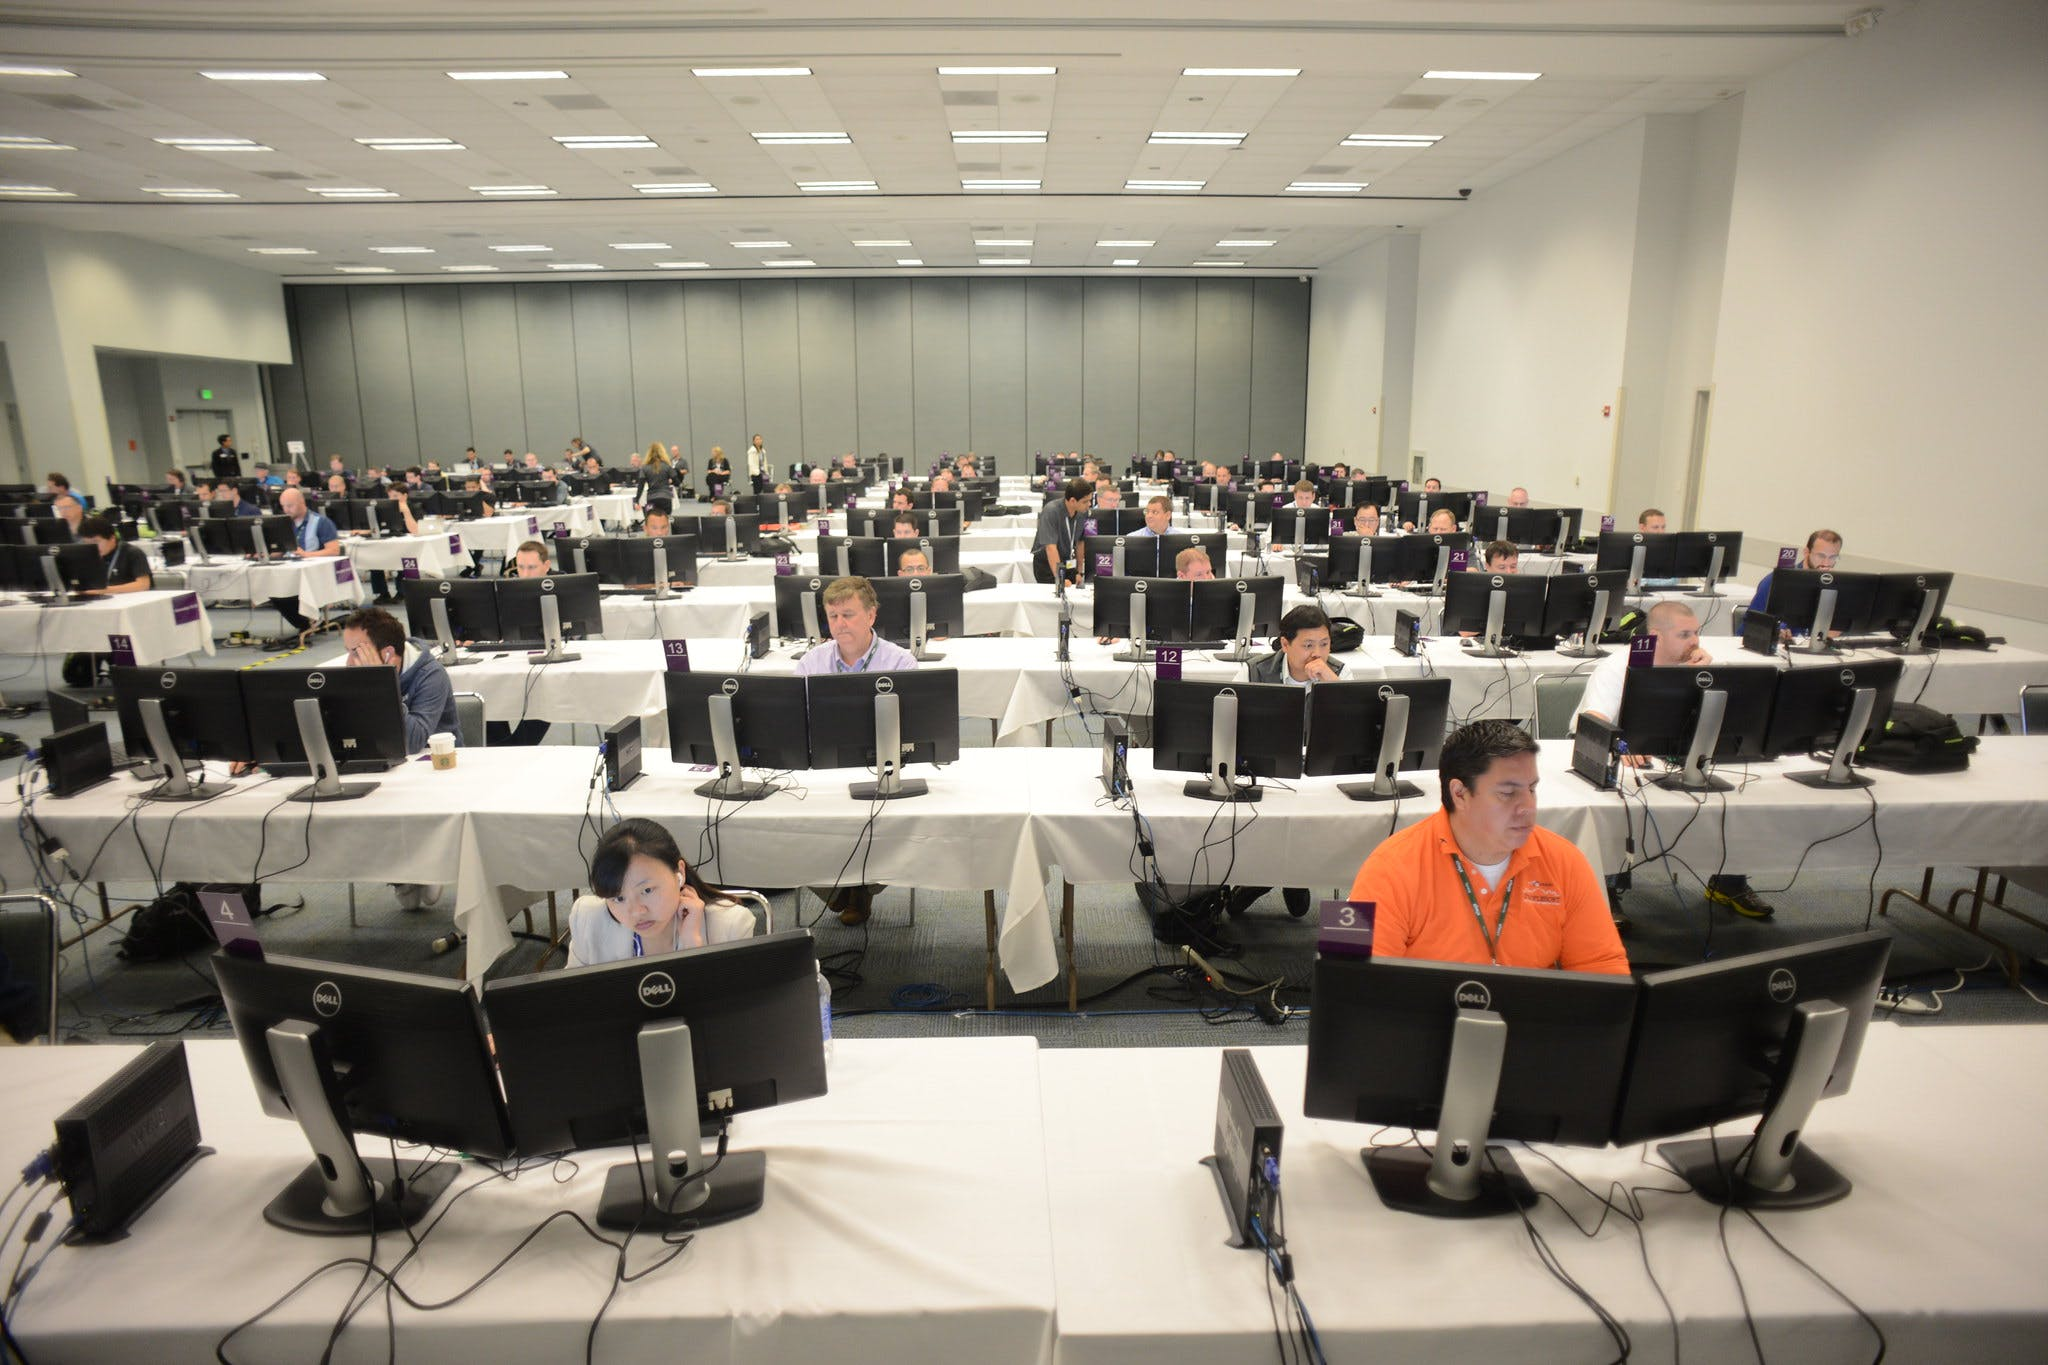 A computer lab filled with computers, with people sitting at them working.